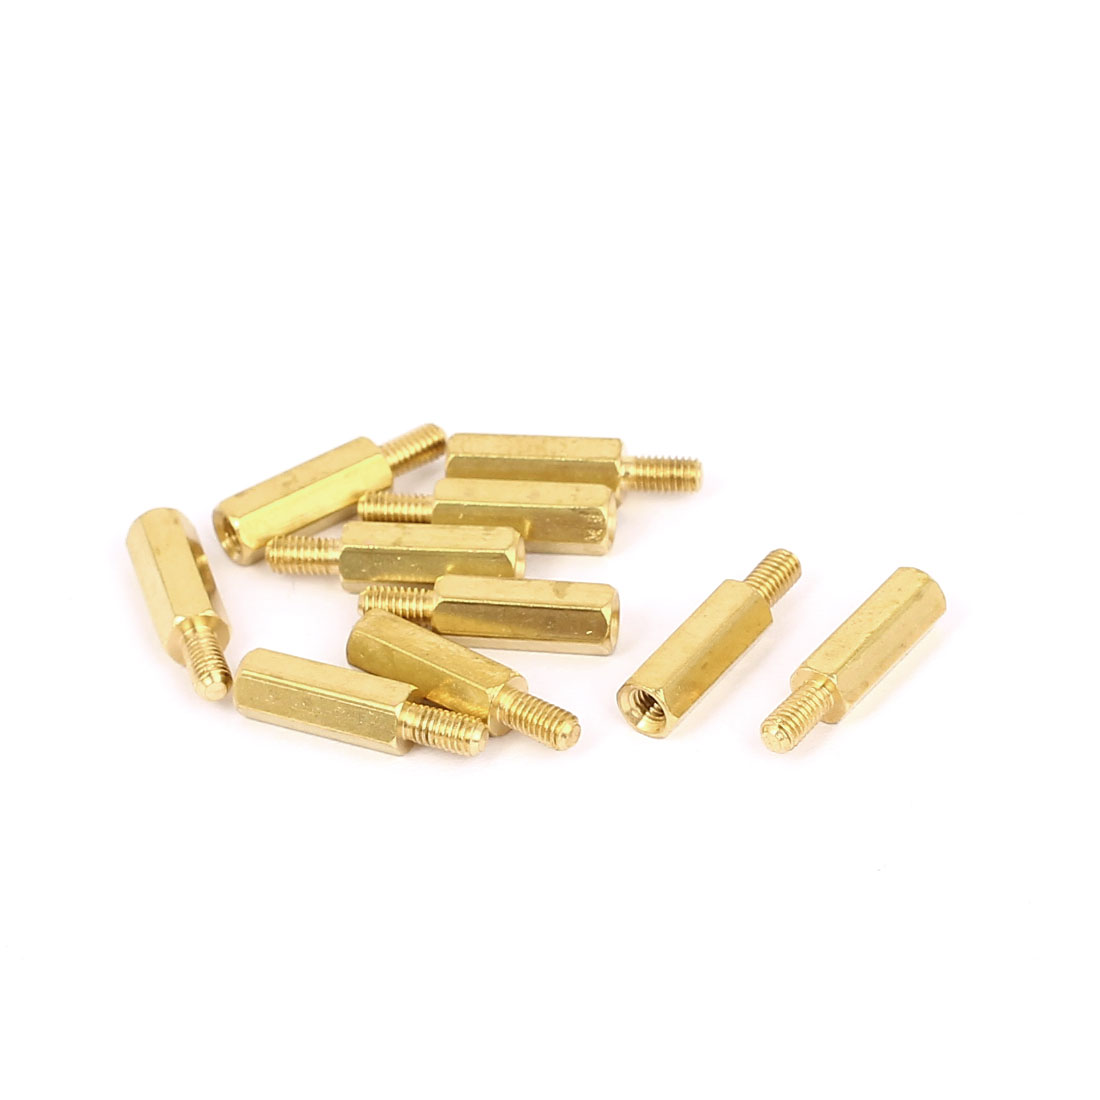 M3x13mm+6mm Male to Female Thread 0.5mm Pitch Brass Hex Standoff Spacer 10Pcs